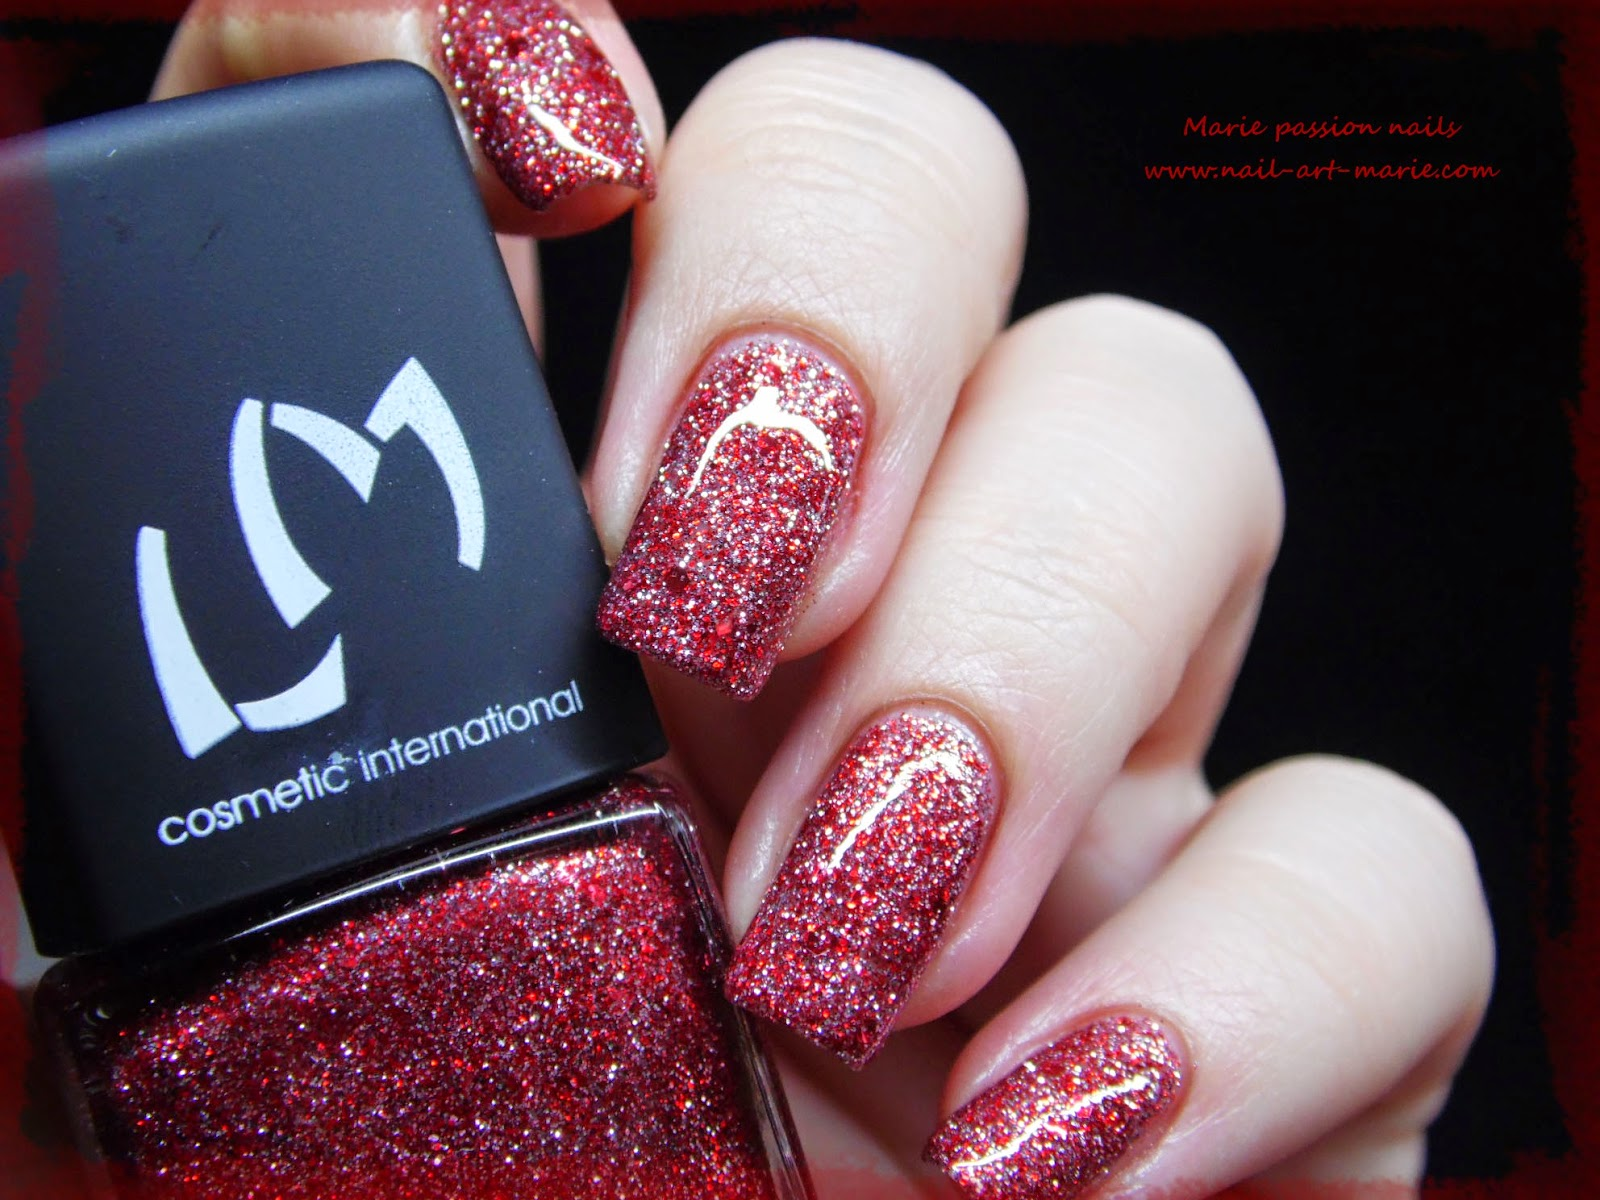 LM Cosmetic Superbe5